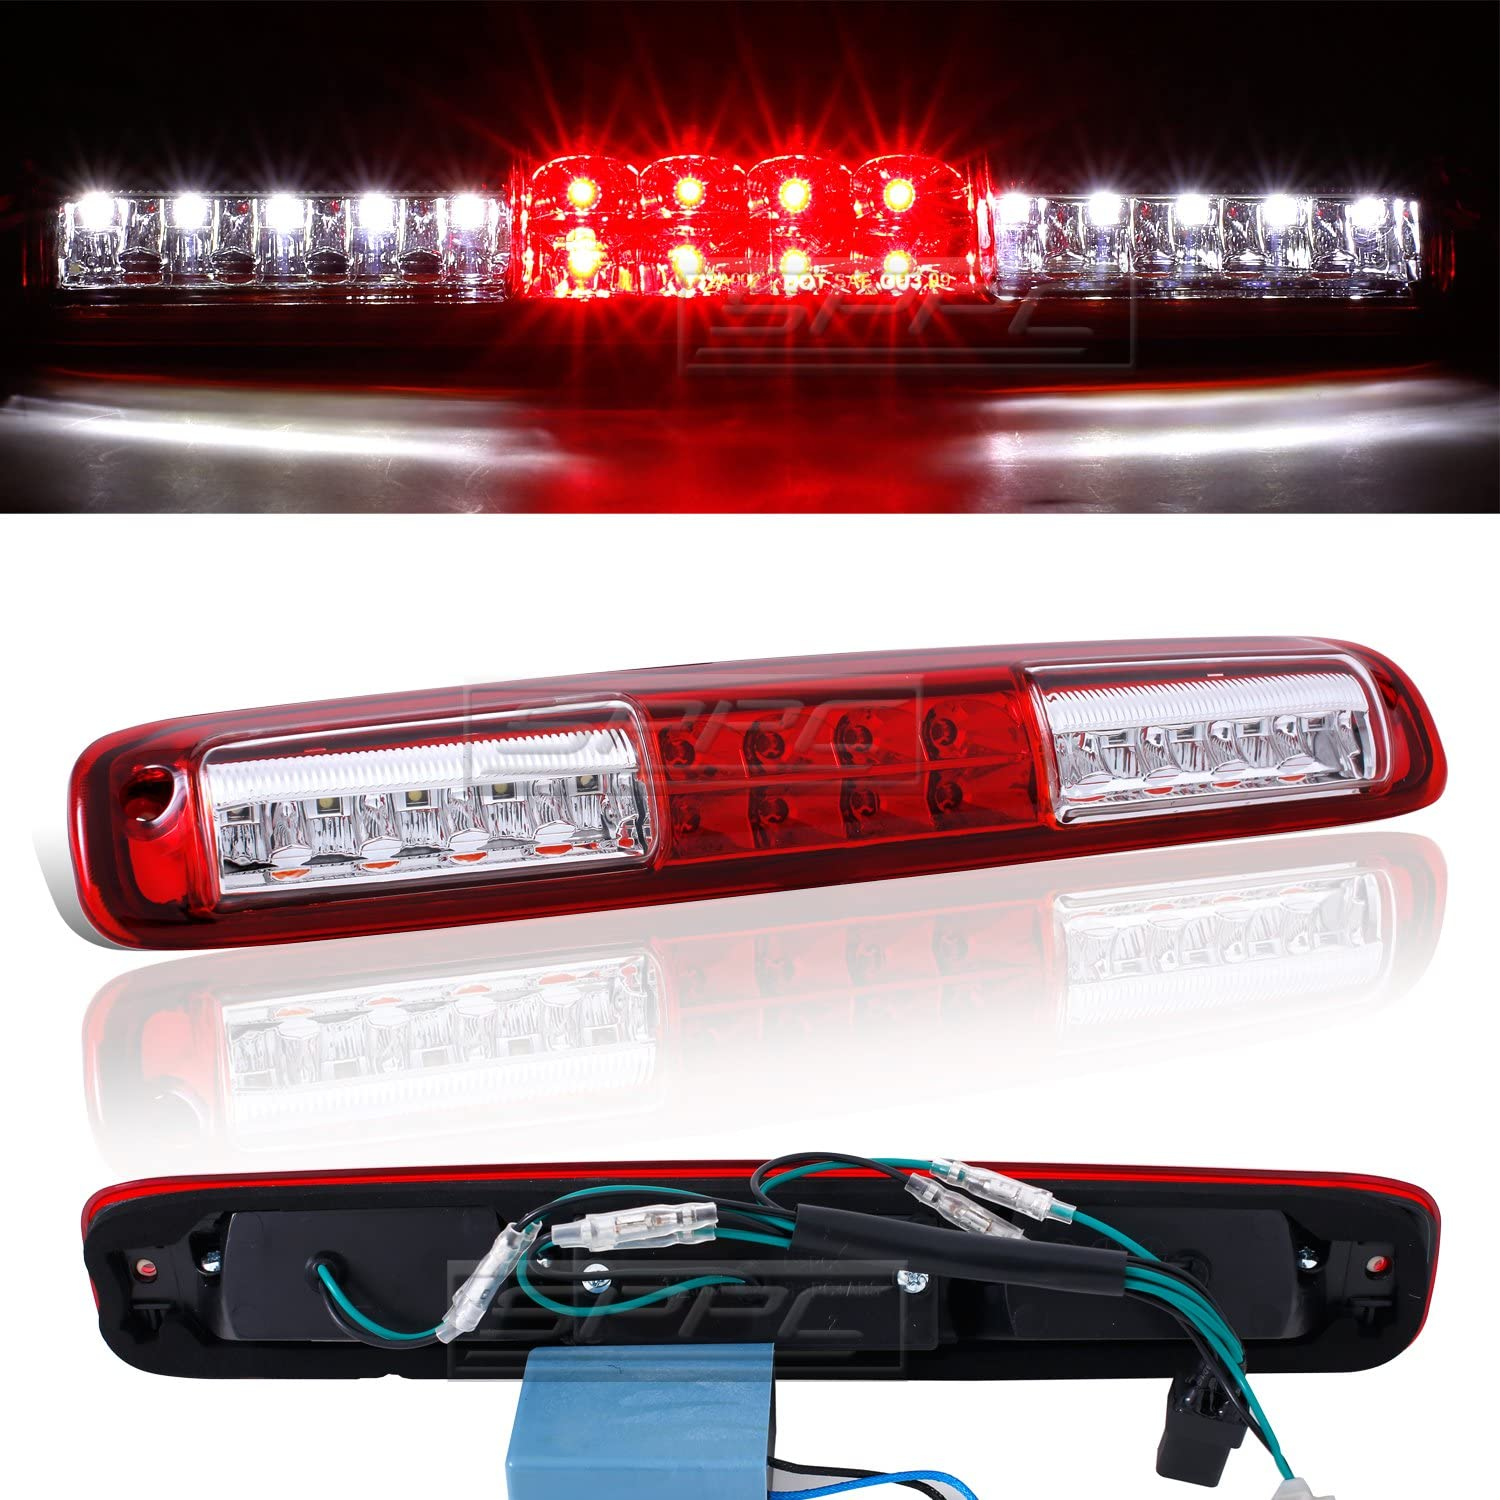 Amazon.com: SPPC Red/Clear LED 3rd Brake Lights For Chevy Silverado : GMC  Sierra - Cargp Tail Lamp: AutomotiveAmazon.com